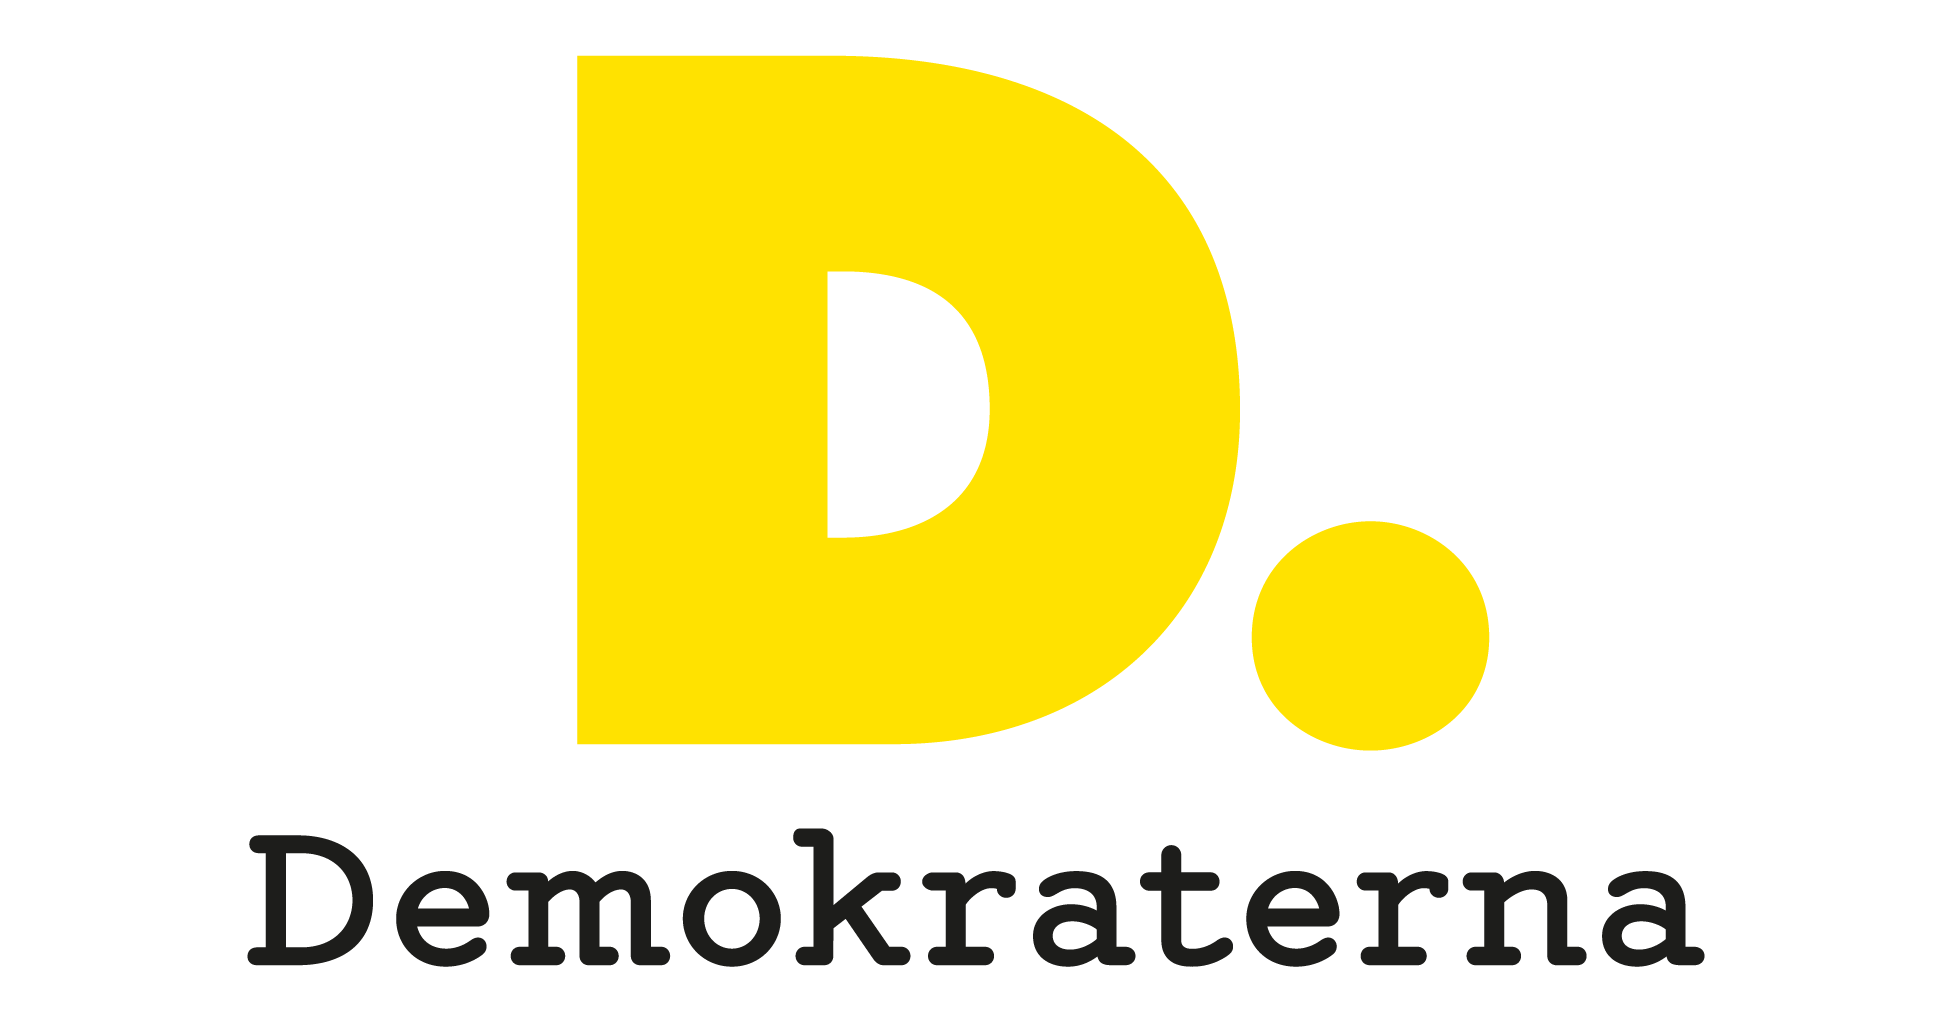 Demokraterna